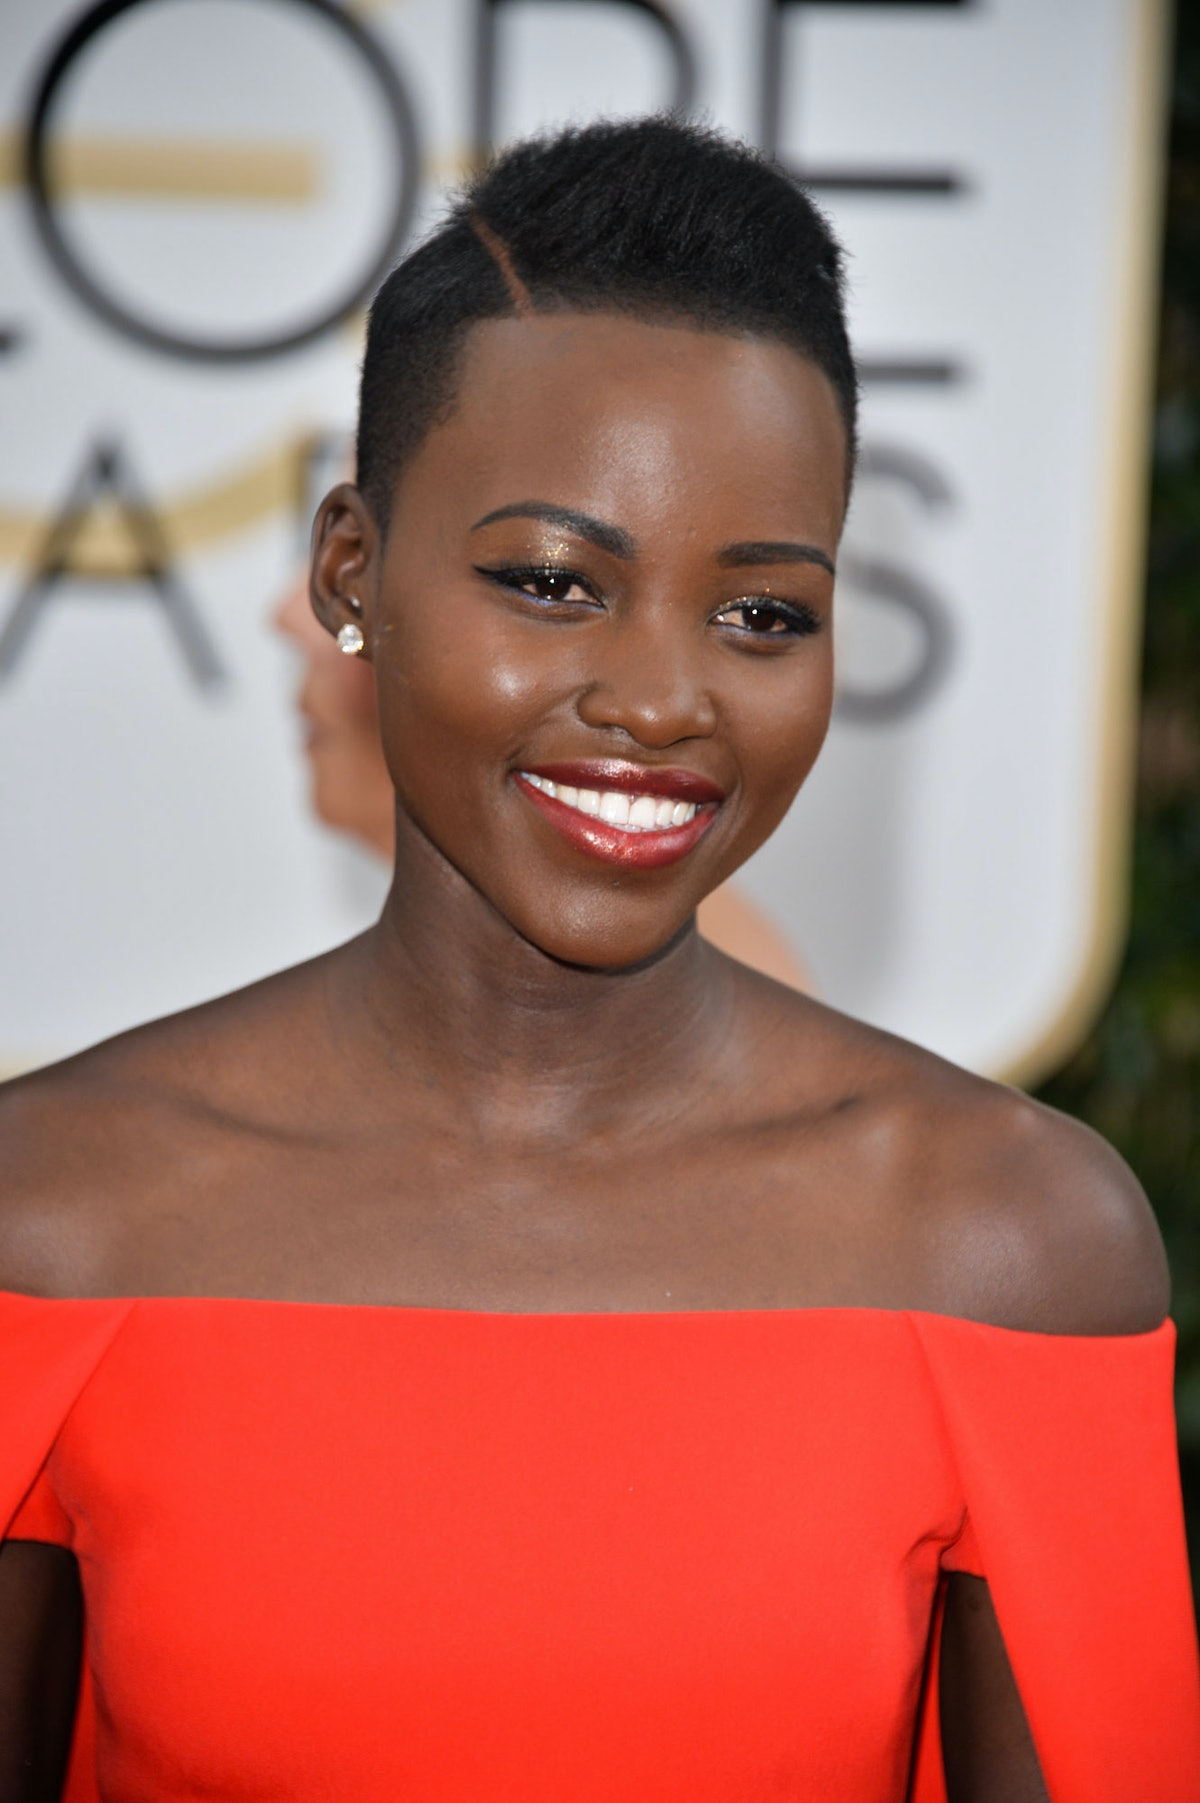 While we're on the fence about her pronounced hair part, __Lupita Nyong'o__'s pale gold eyeshadow an...